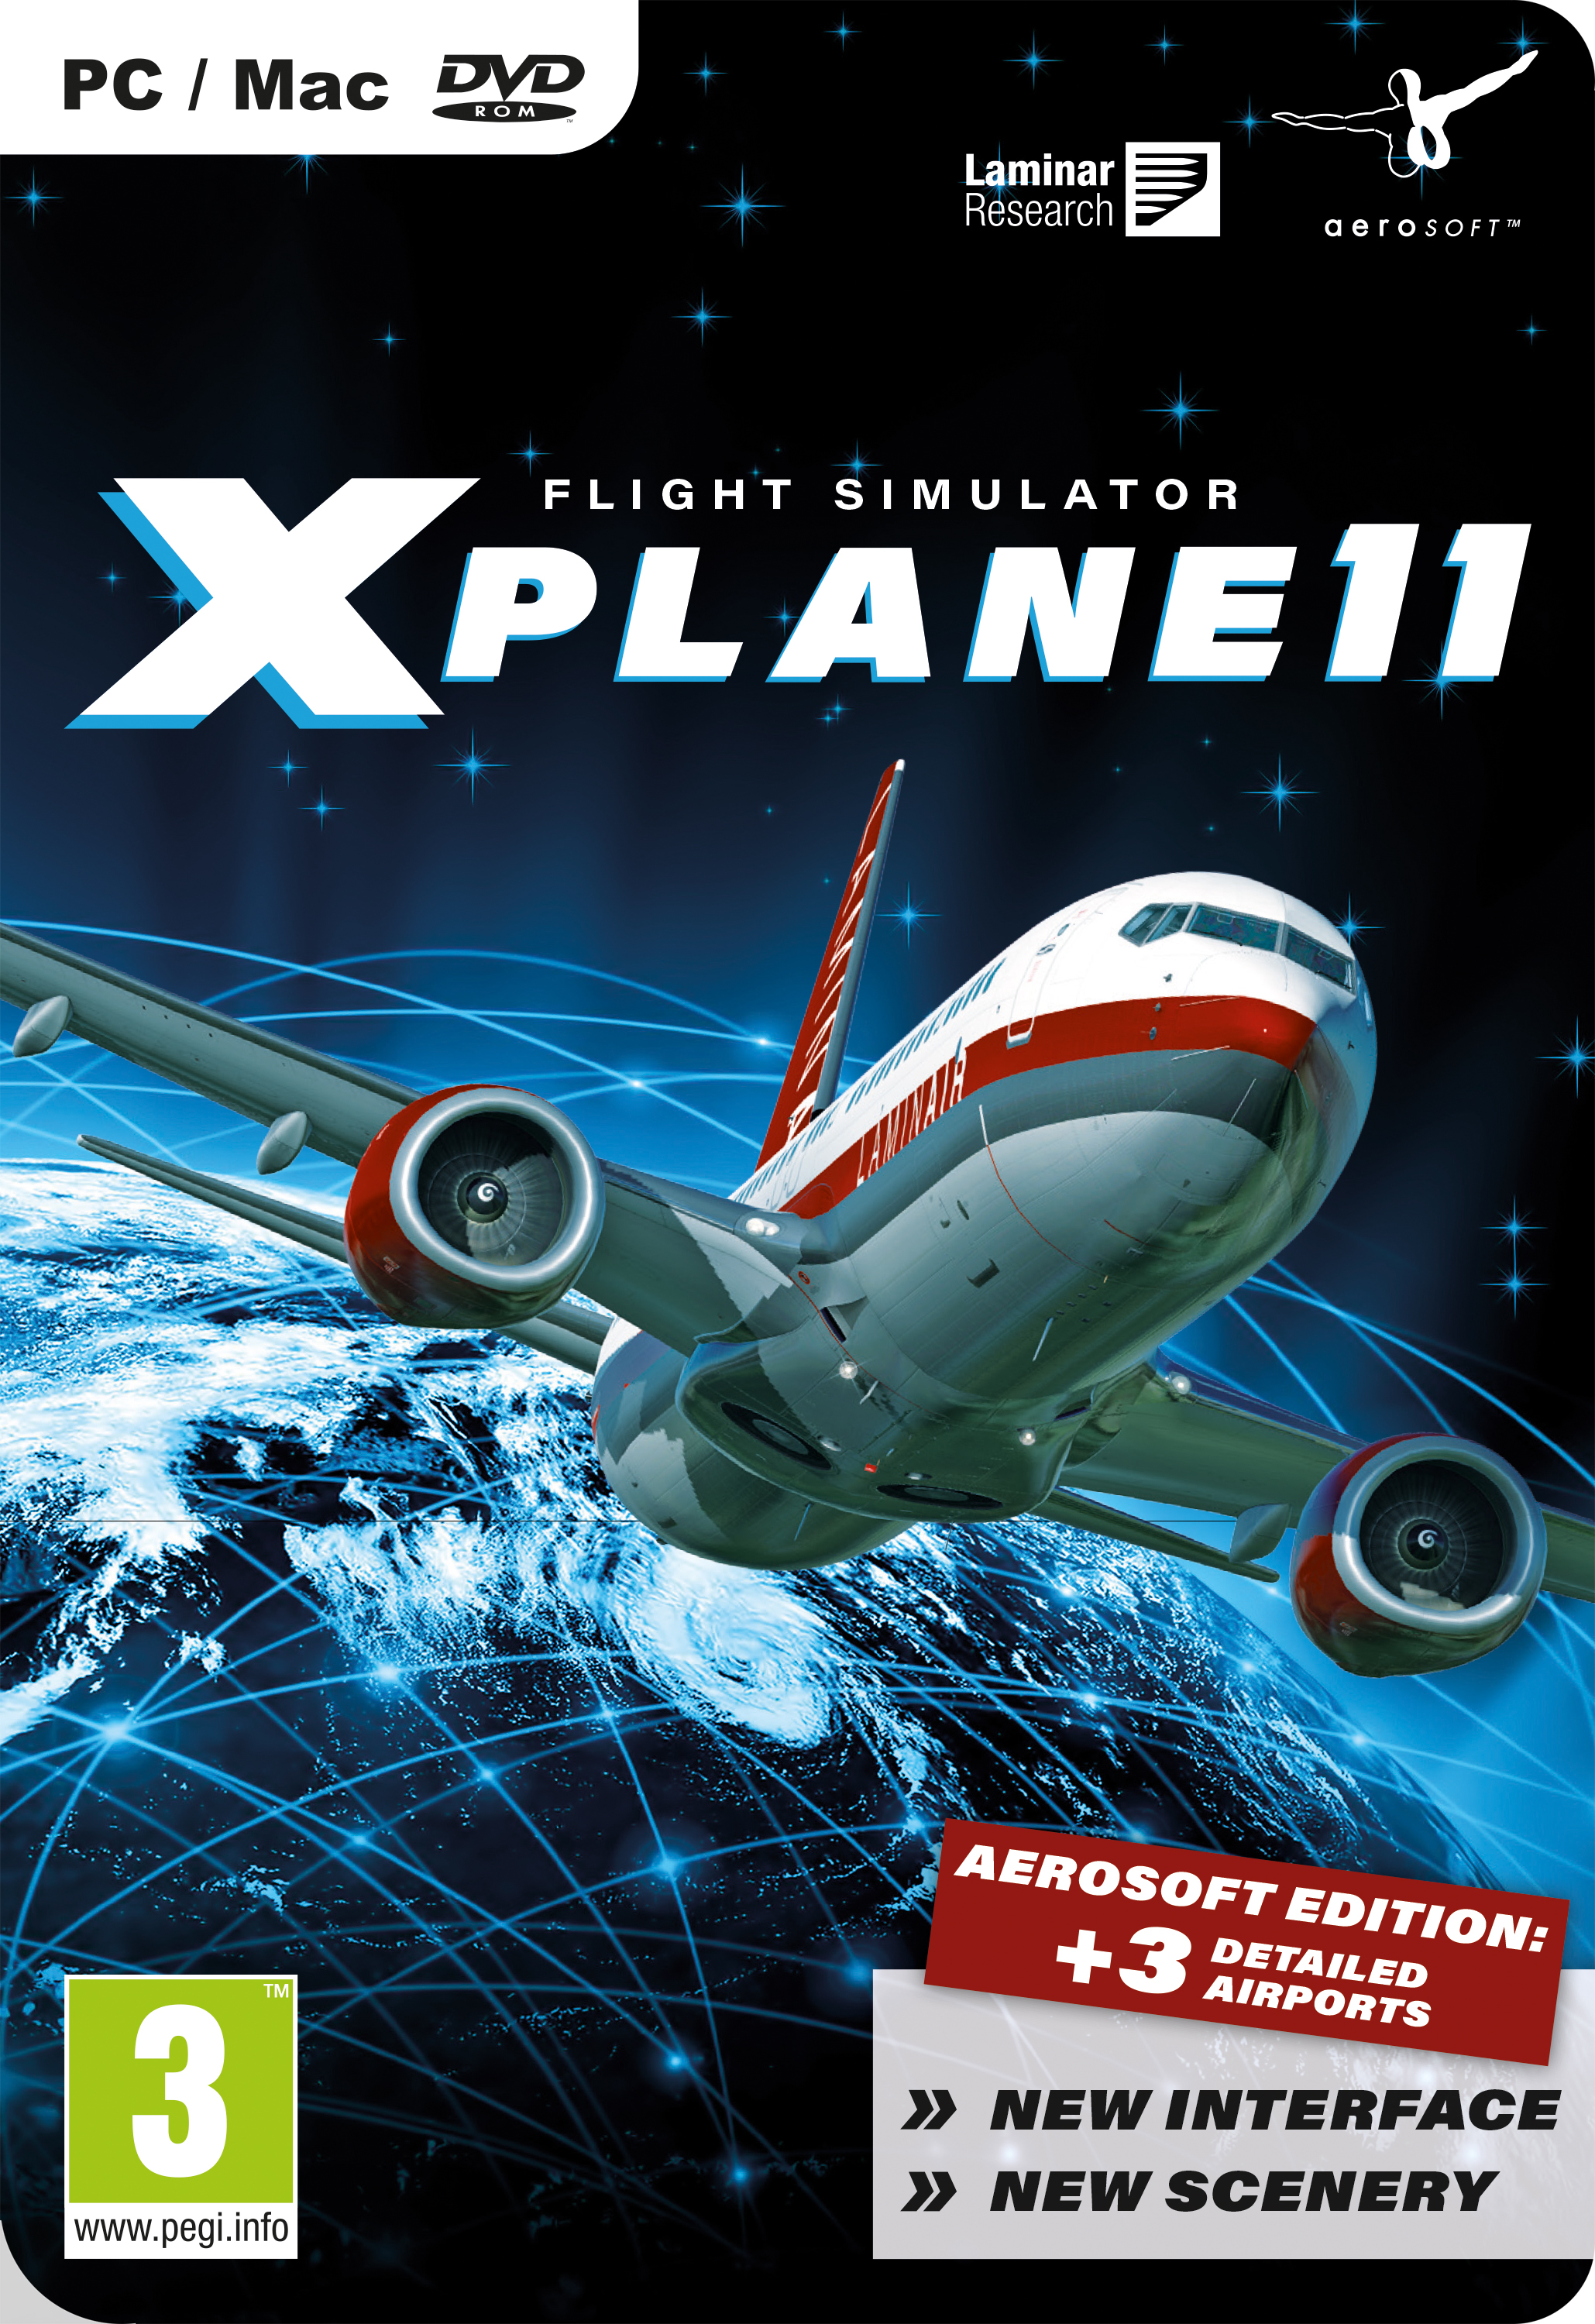 jet plane engine sound with 490 X Plane 11 Box on African Airline Reports Drone Collision With Passenger Jet moreover Concorde Airlines Braniff International Singapore Airlines besides Mlb Pullback Plane Toy Ny Mets moreover Sr 71 Blackbird Cutaway moreover The Worlds Fastest Remote Controlled Jet Is Halfway To The Sound Barrier At 440 Mph.